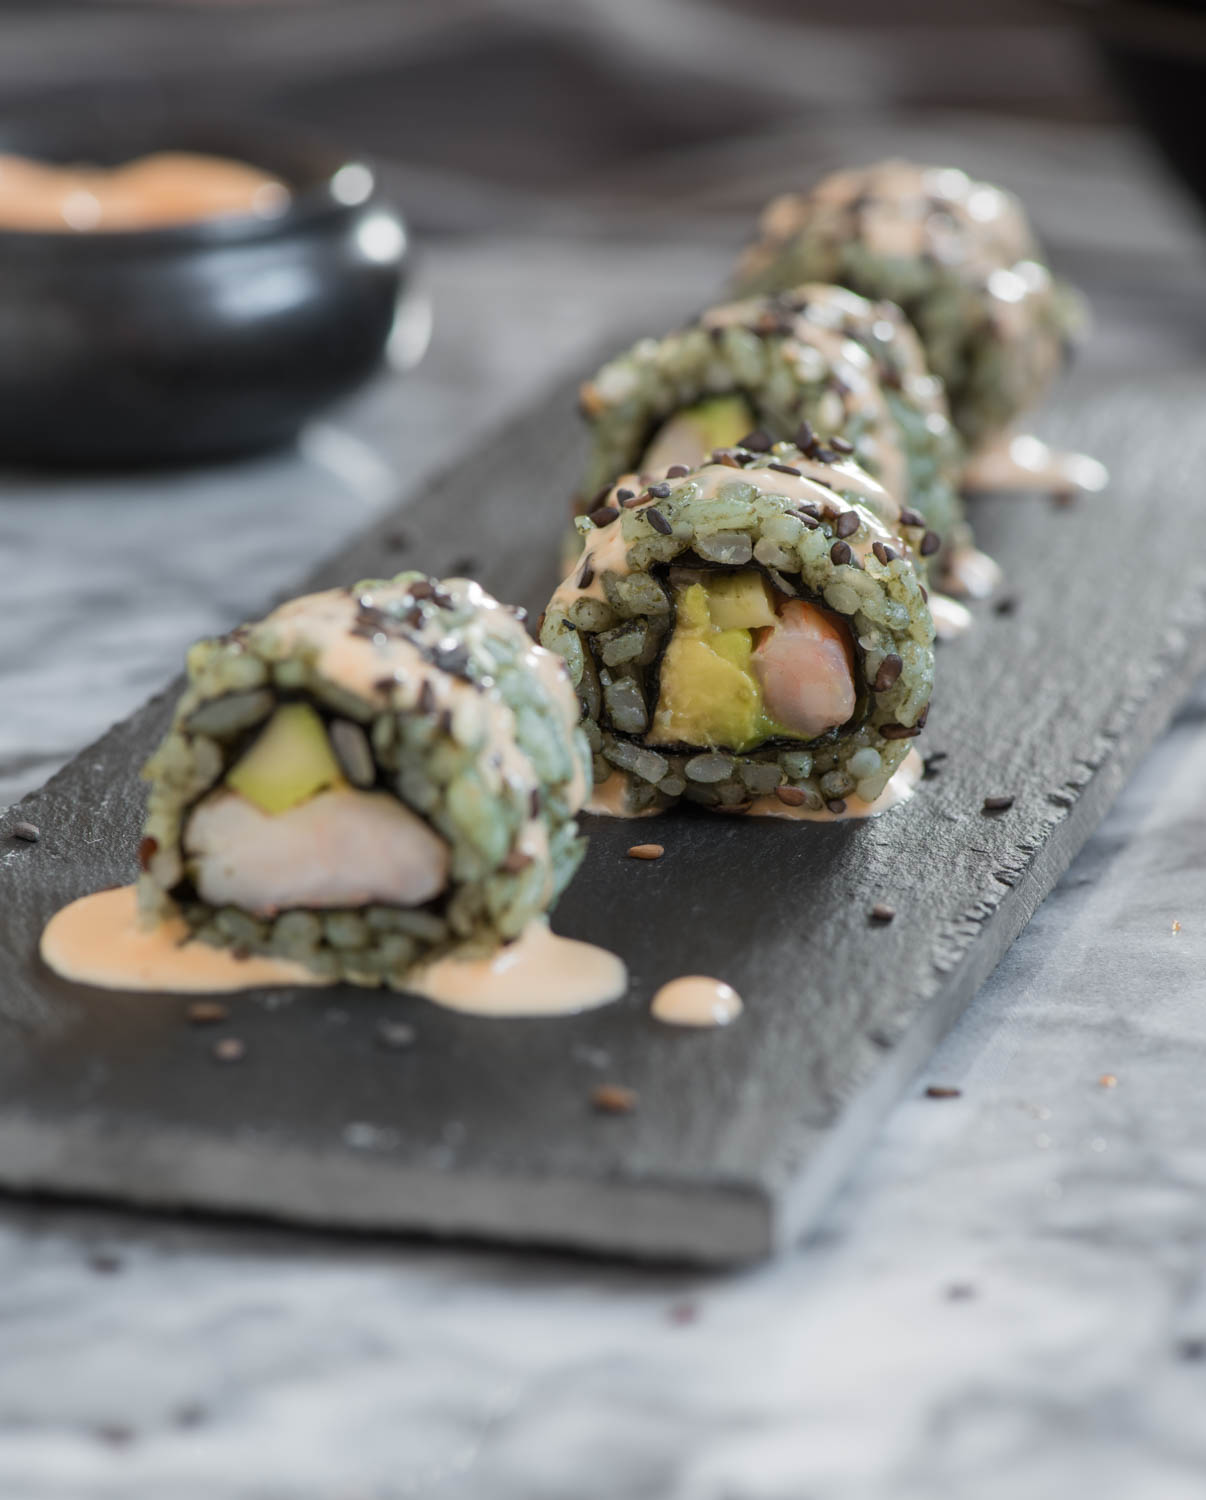 close up shot of healthy sugar free sushi rolls with shrimp and avocado - naturally colored and topped with spicy mayo sauce